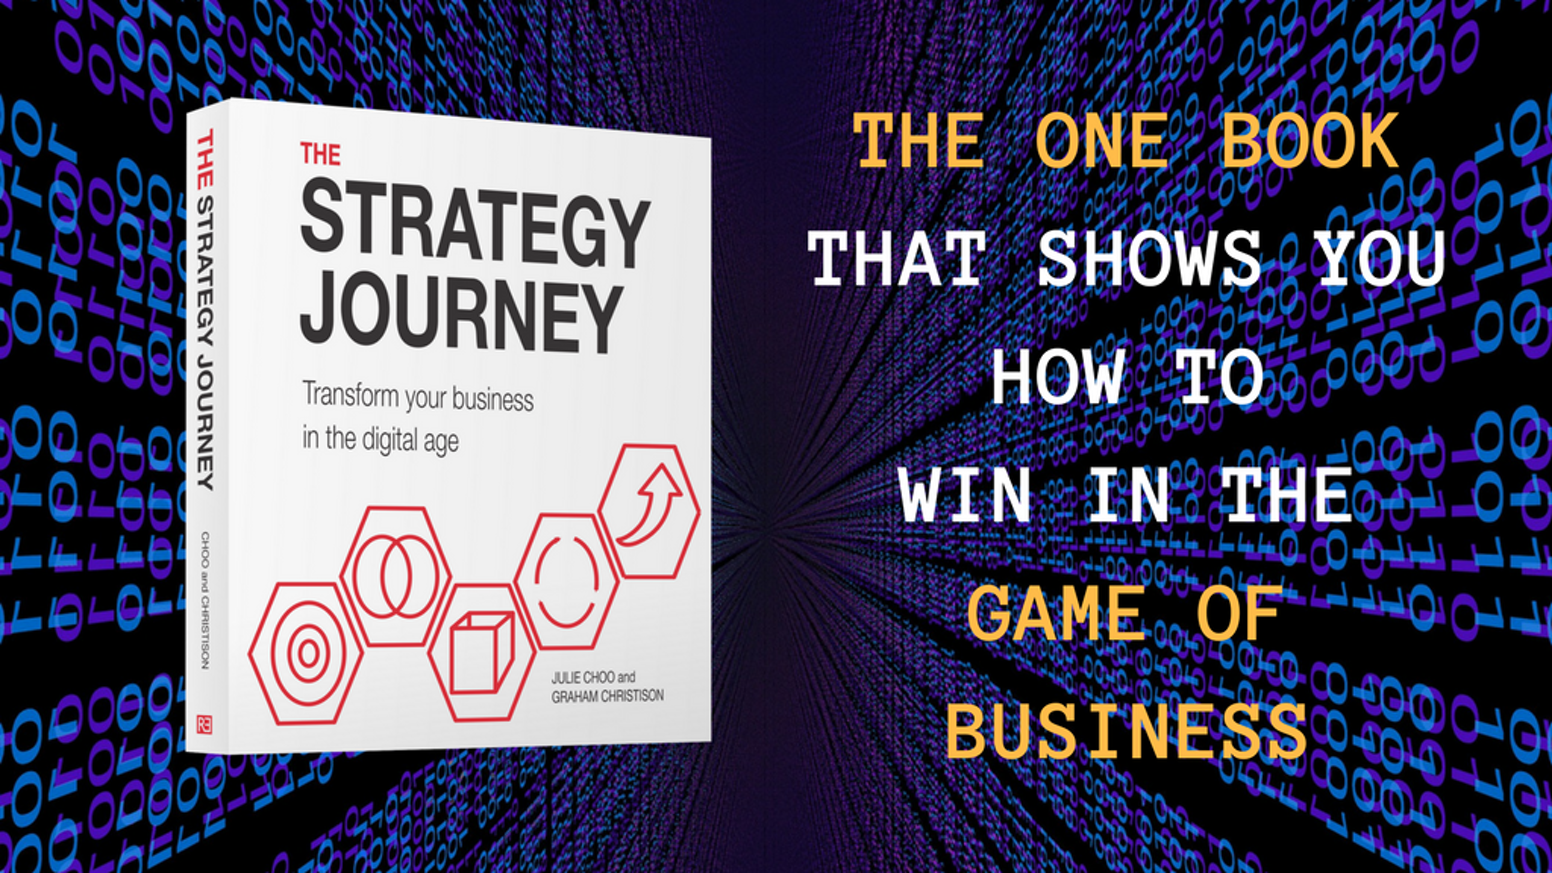 THE STRATEGY JOURNEY book - can give you insights and intelligence into your business to empower its transformation in the digital age.